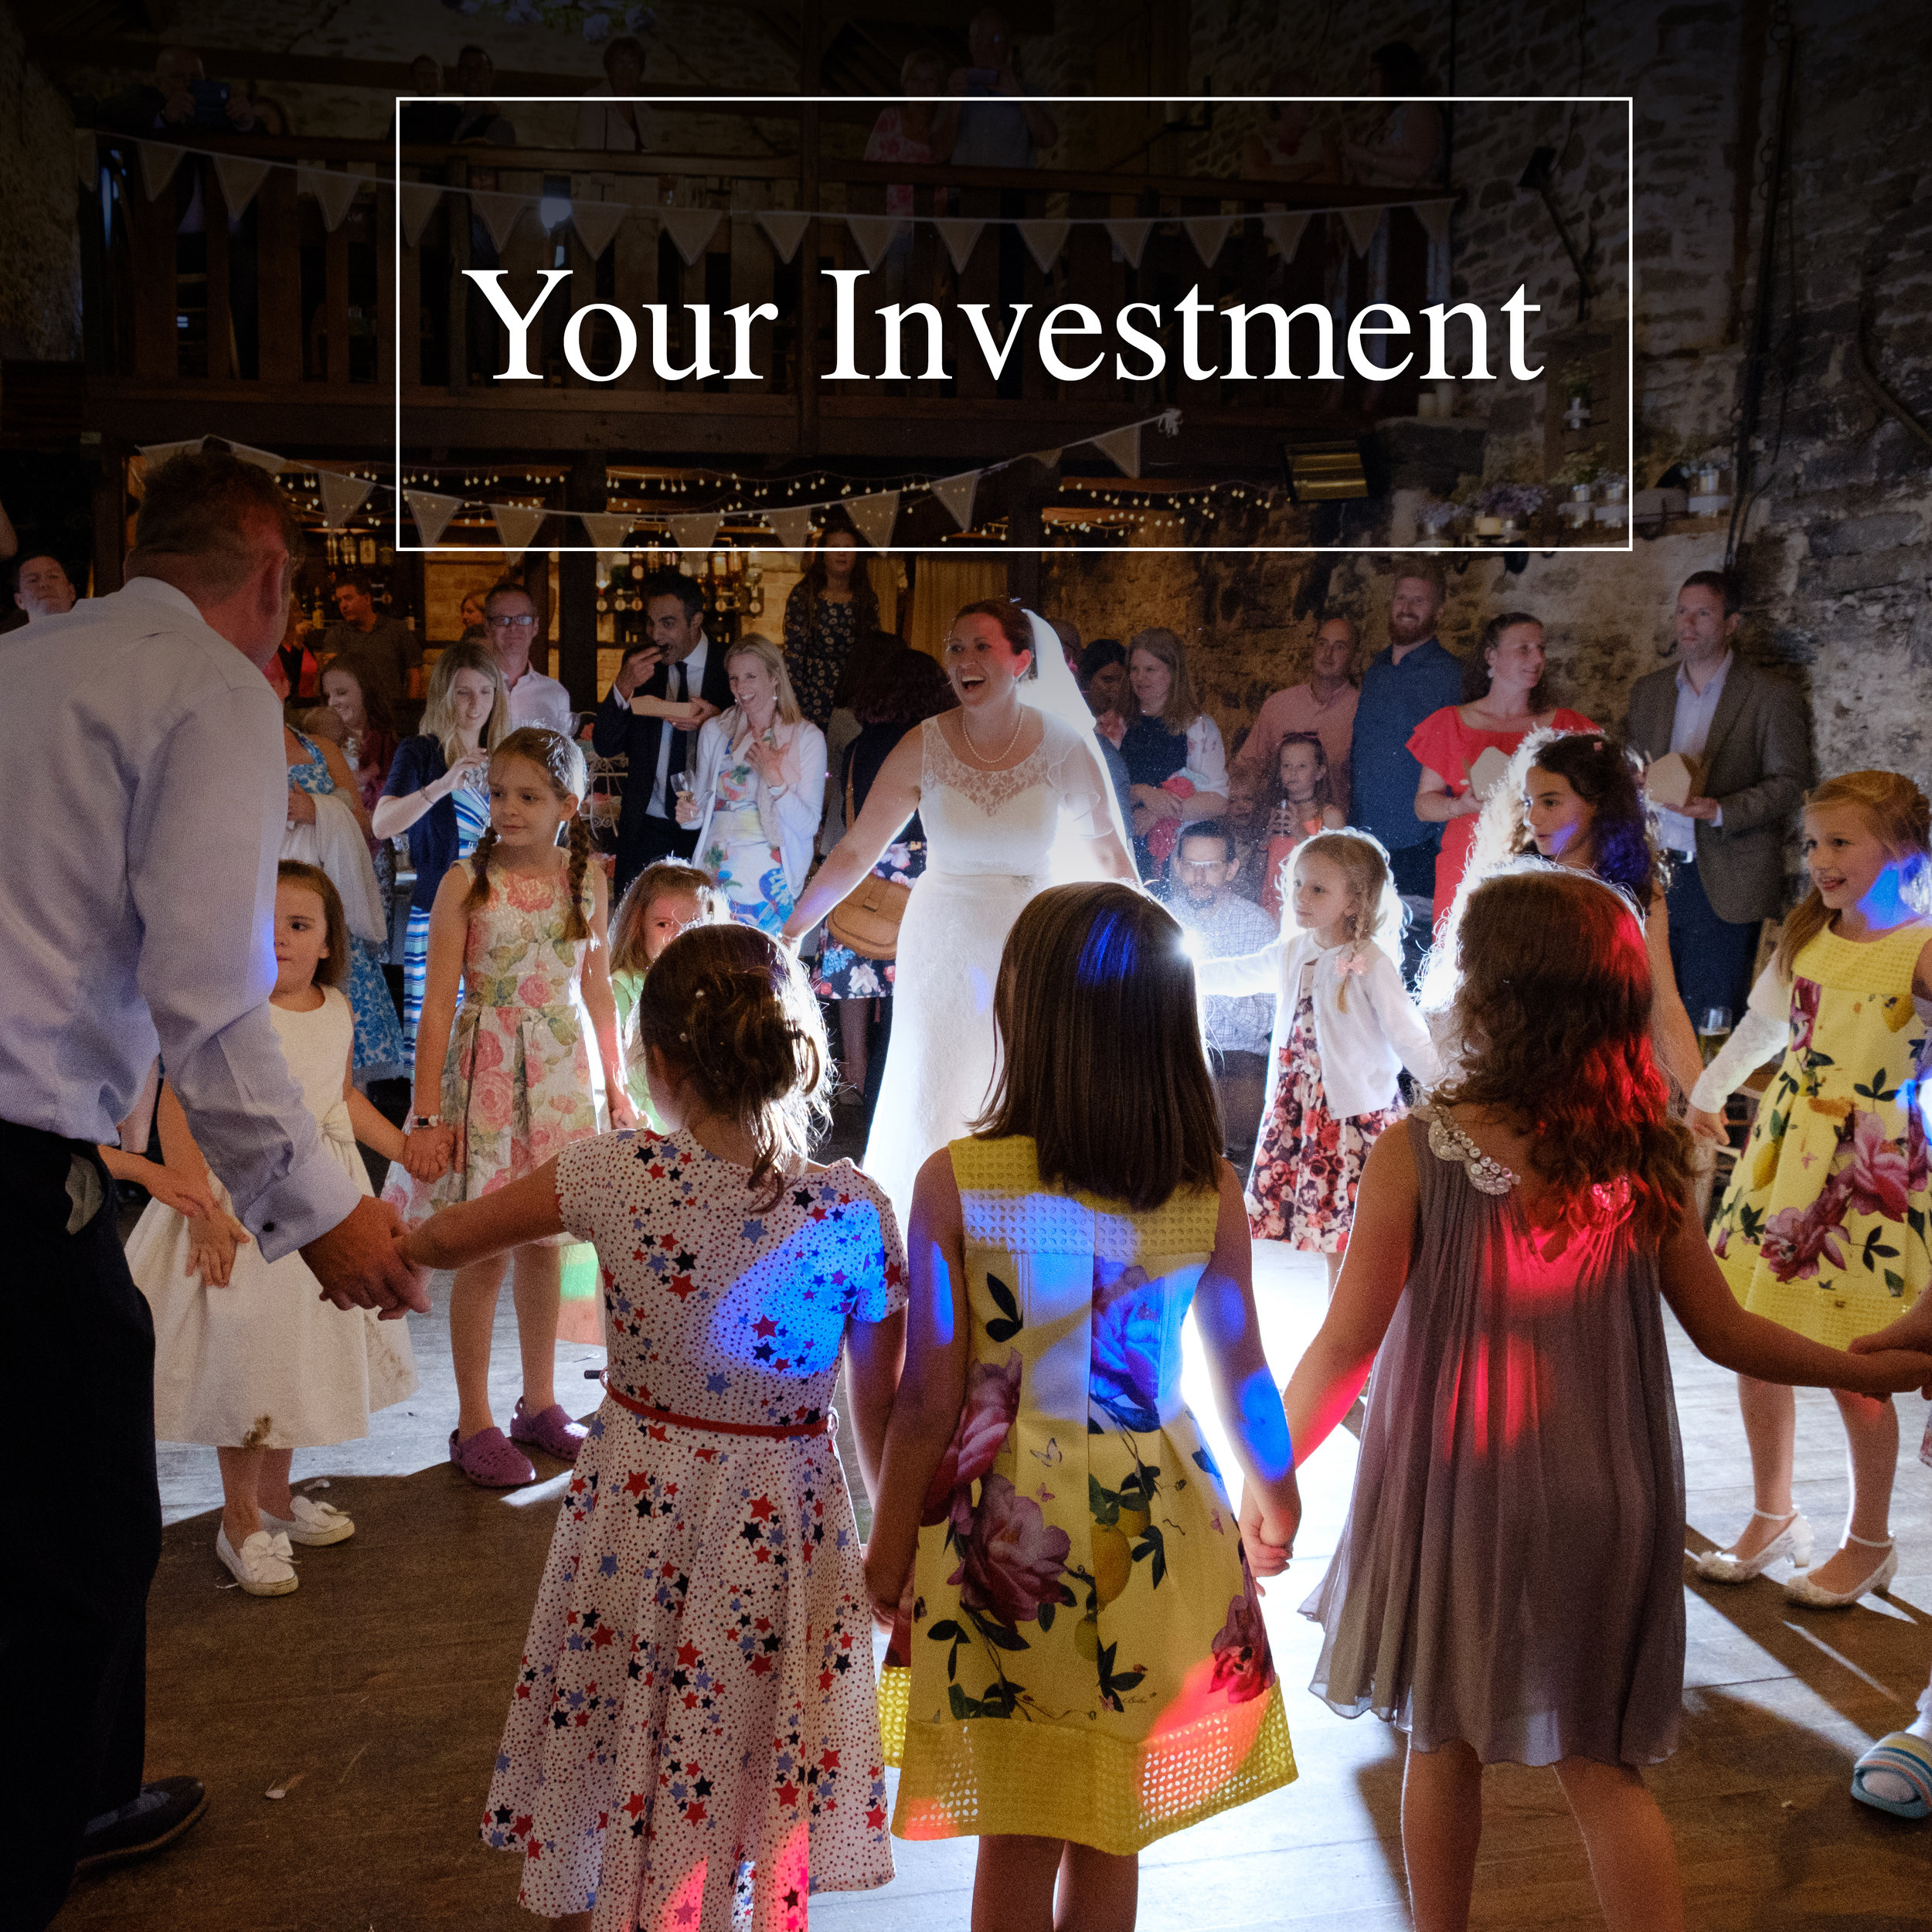 Your investment.jpg